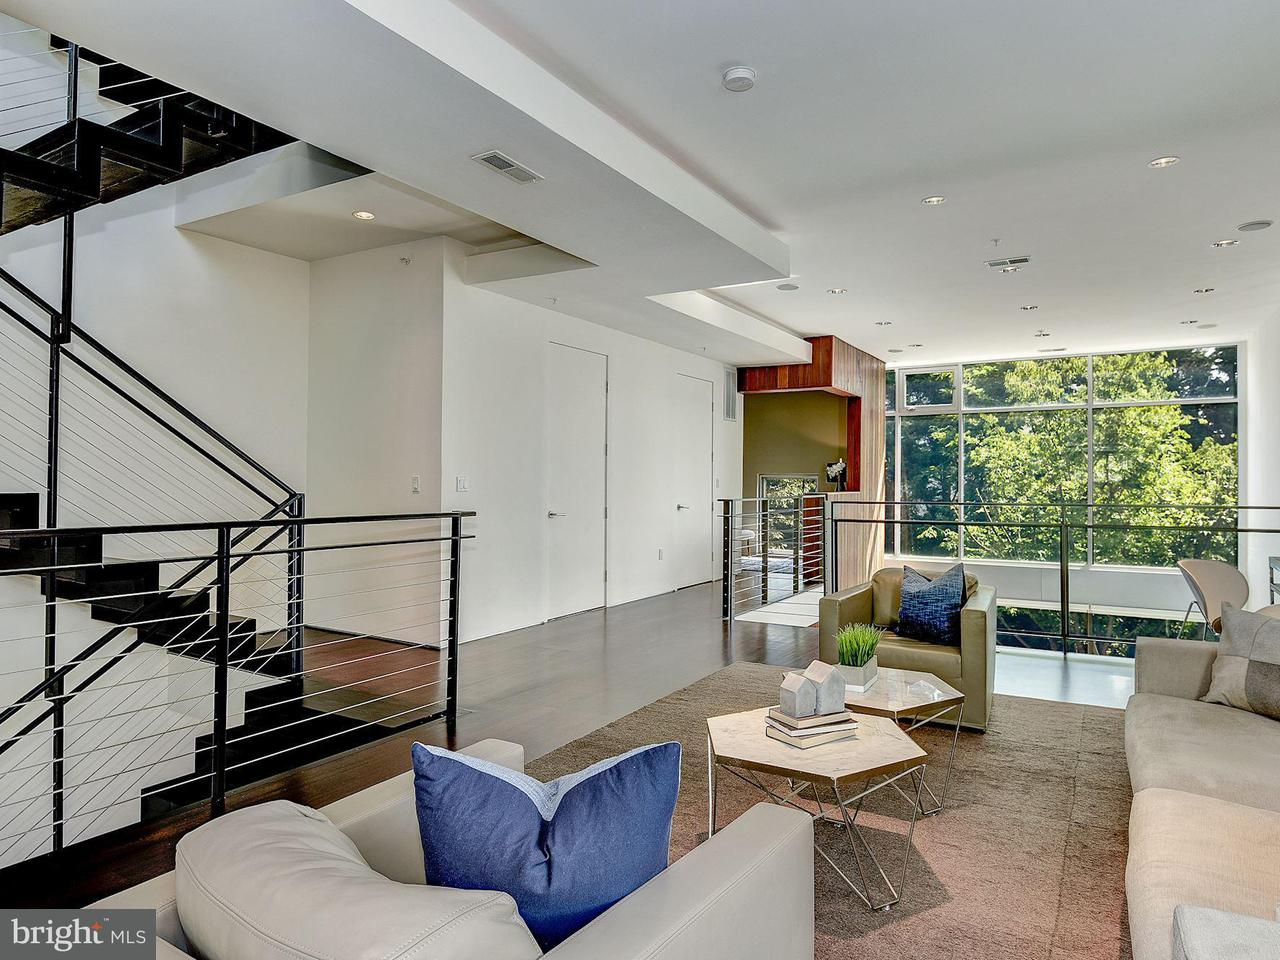 Additional photo for property listing at 3611 R ST NW 3611 R ST NW Washington, District Of Columbia 20007 United States